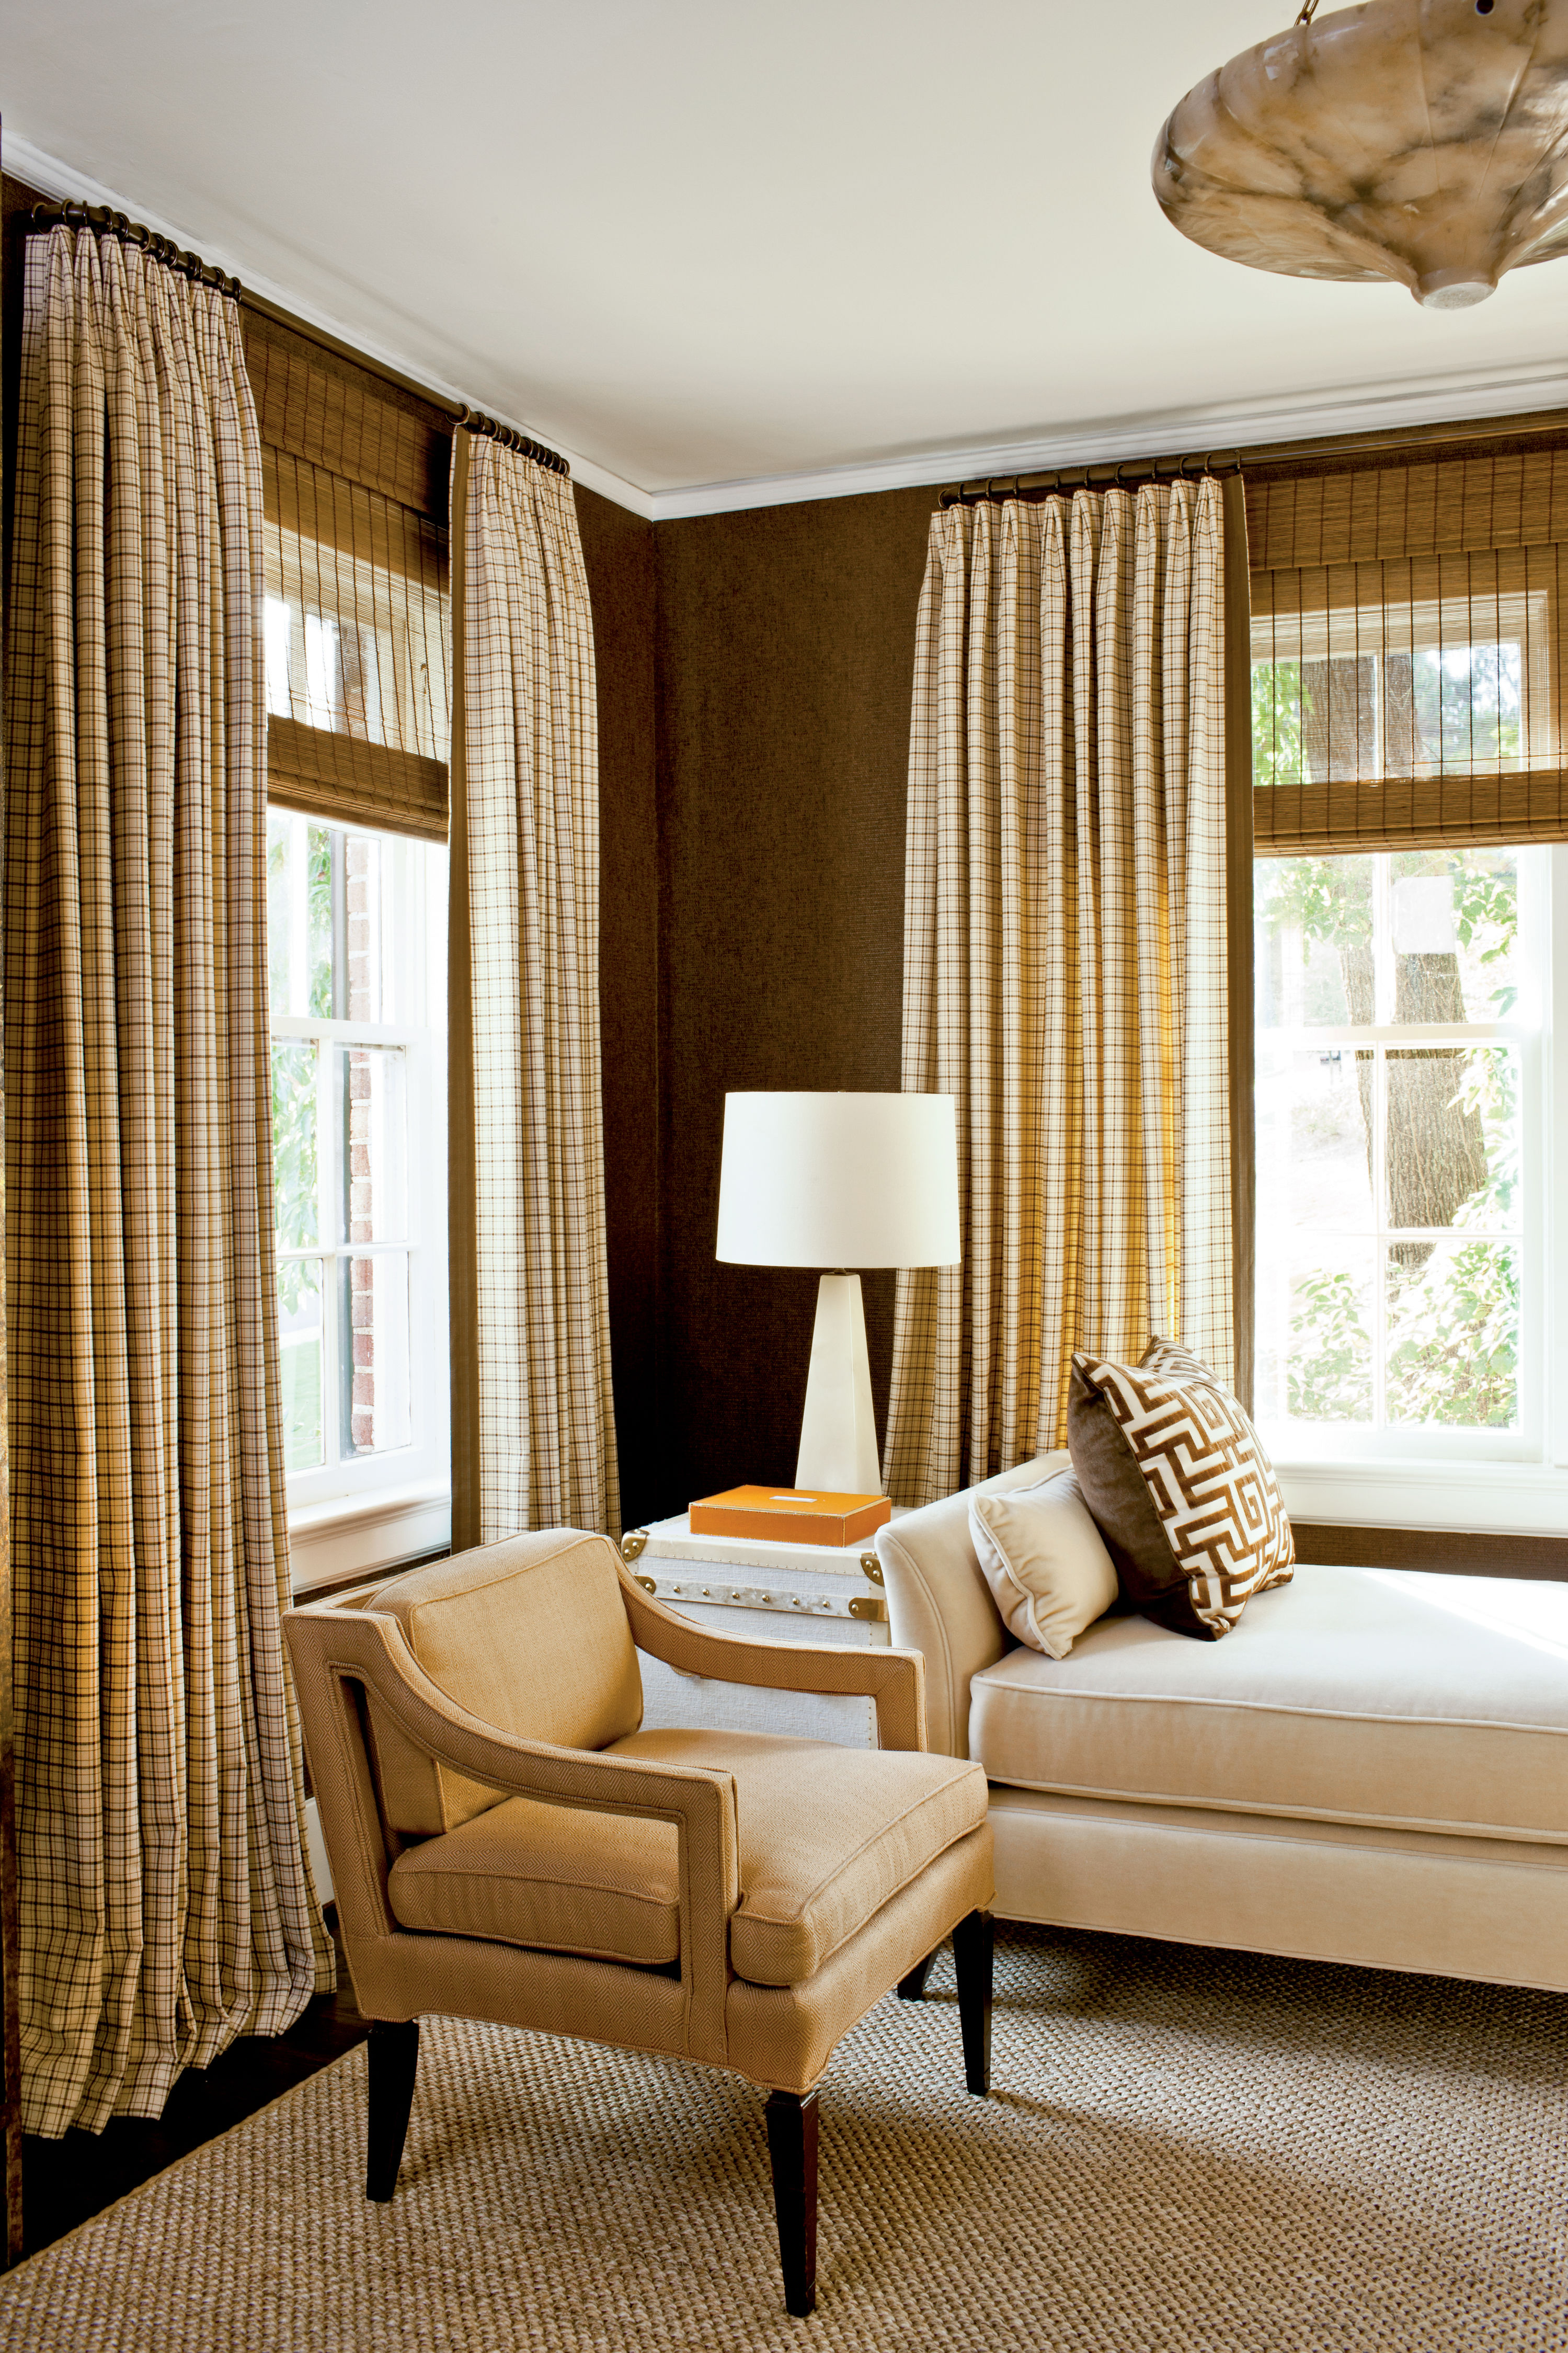 Phoebe's Window Treatment Formula: Keep it Simple